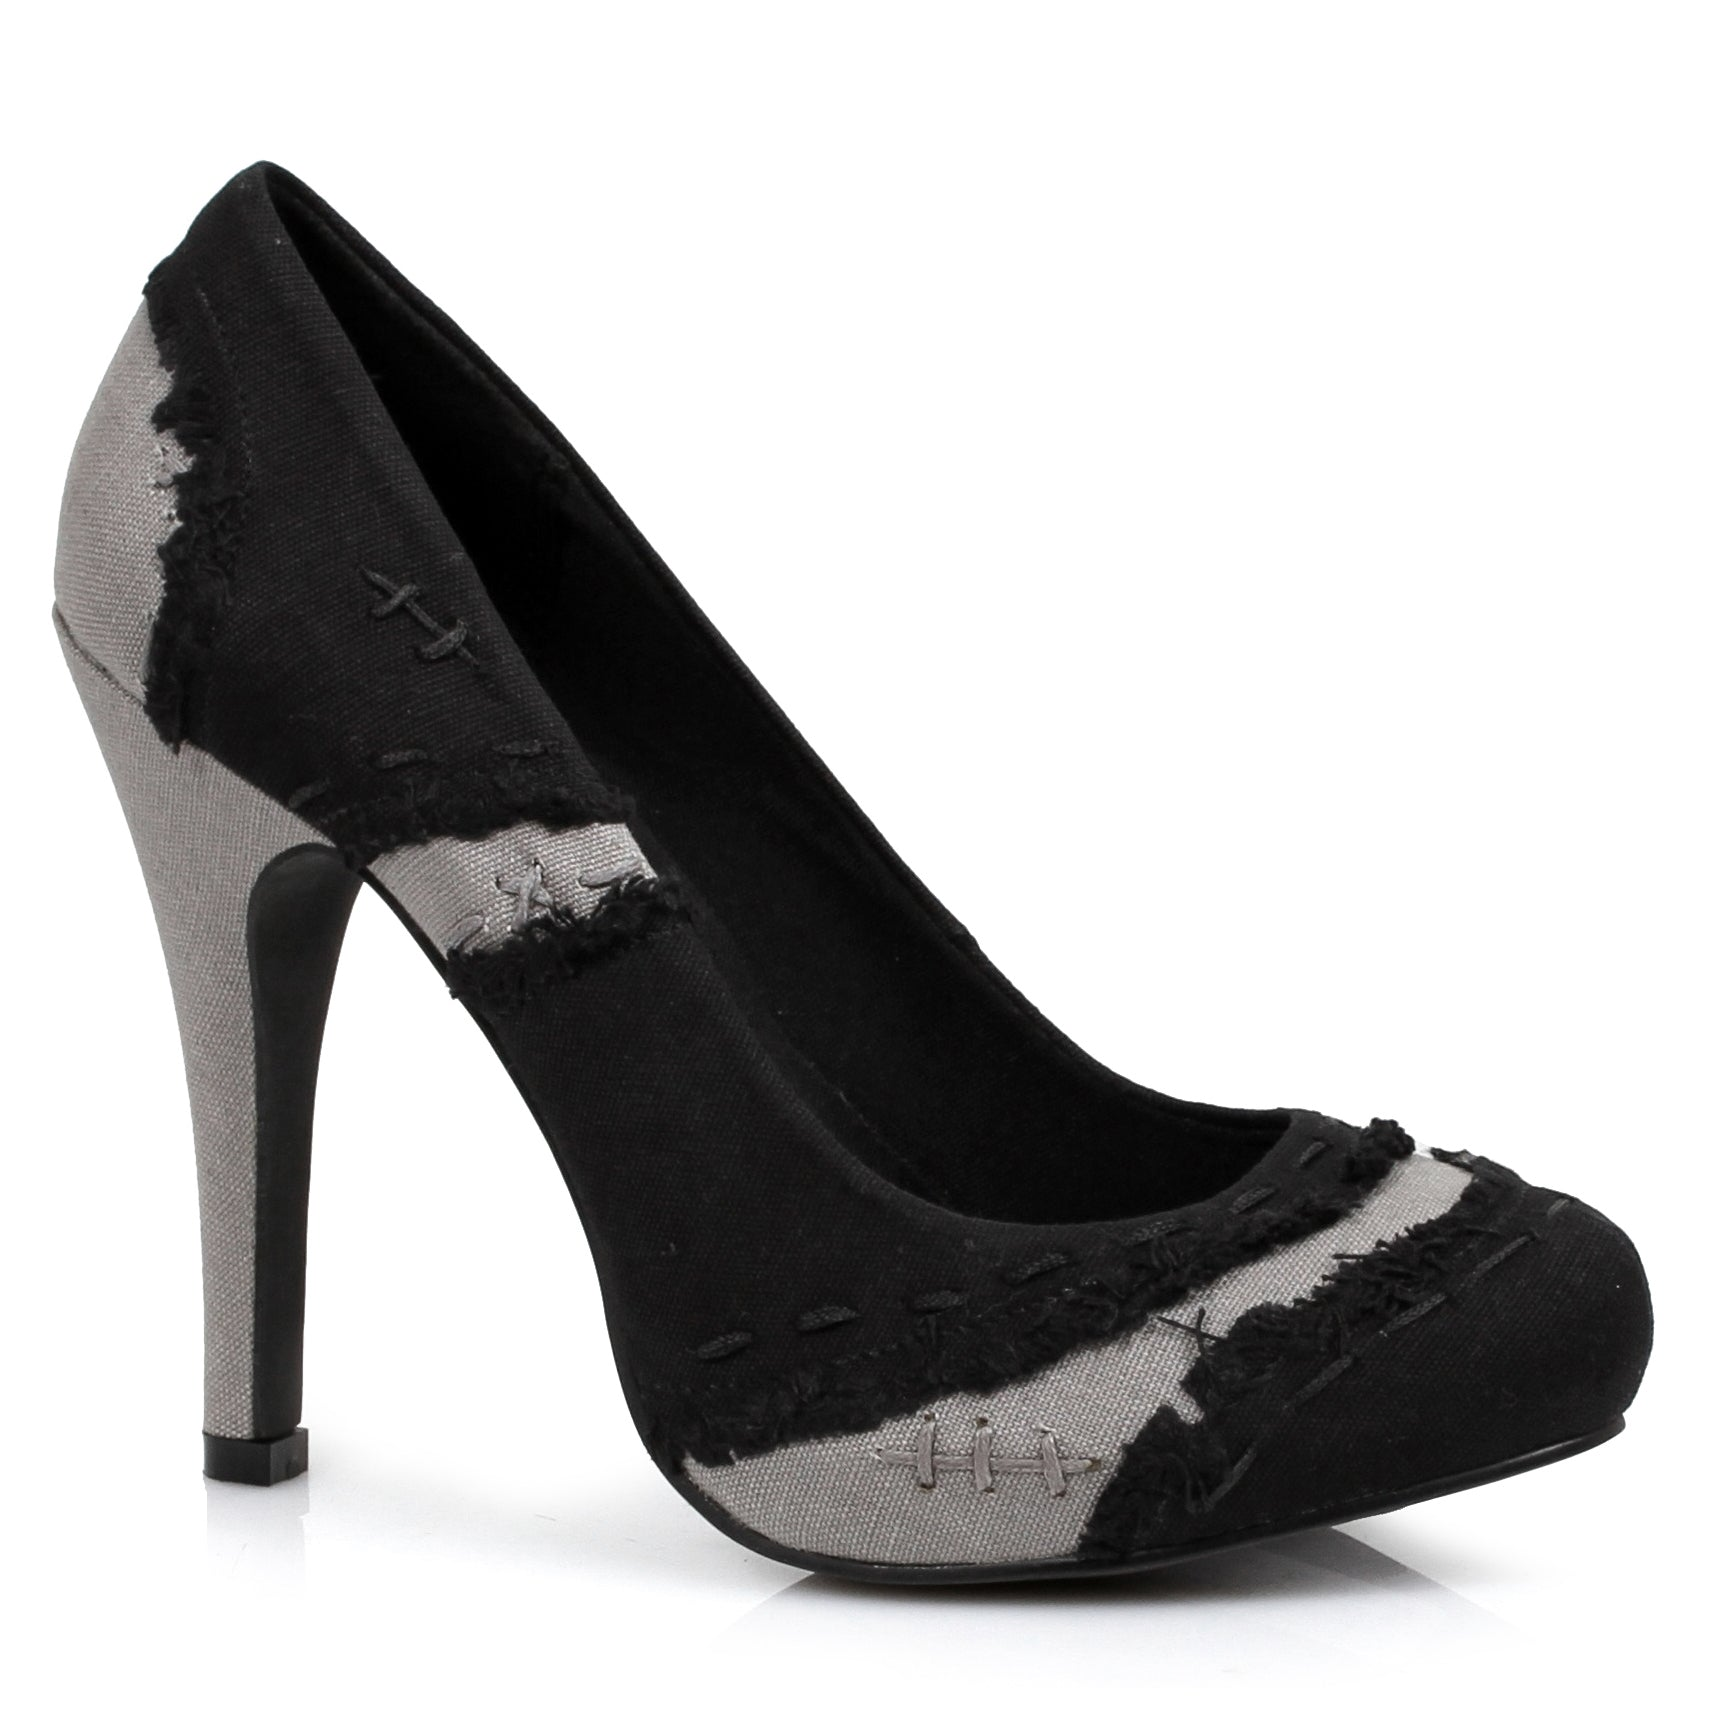 4 Heel Zombie Pump. Women